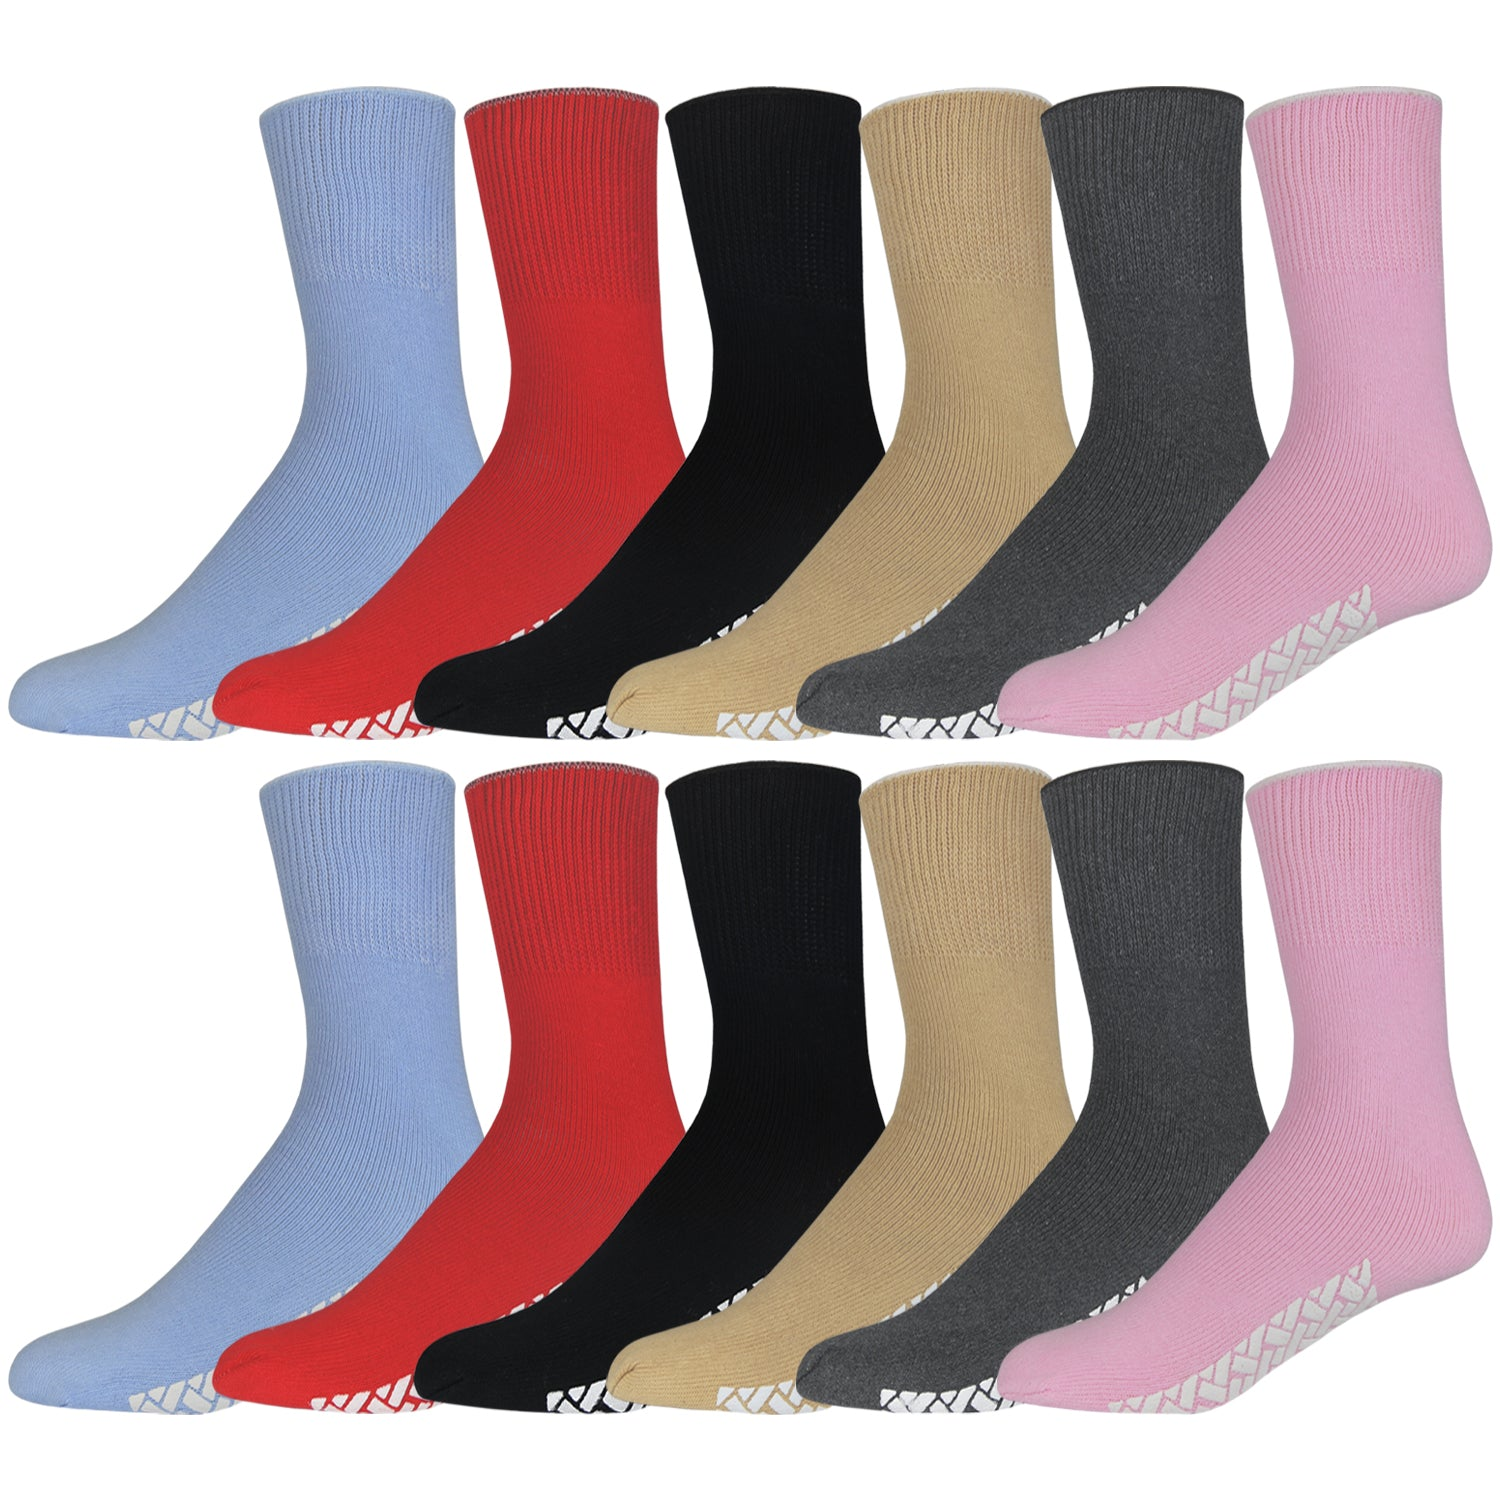 Colorful Women's Hospital Socks With The Rubber On The Bottom Of Them And Loose Top 12 Pairs